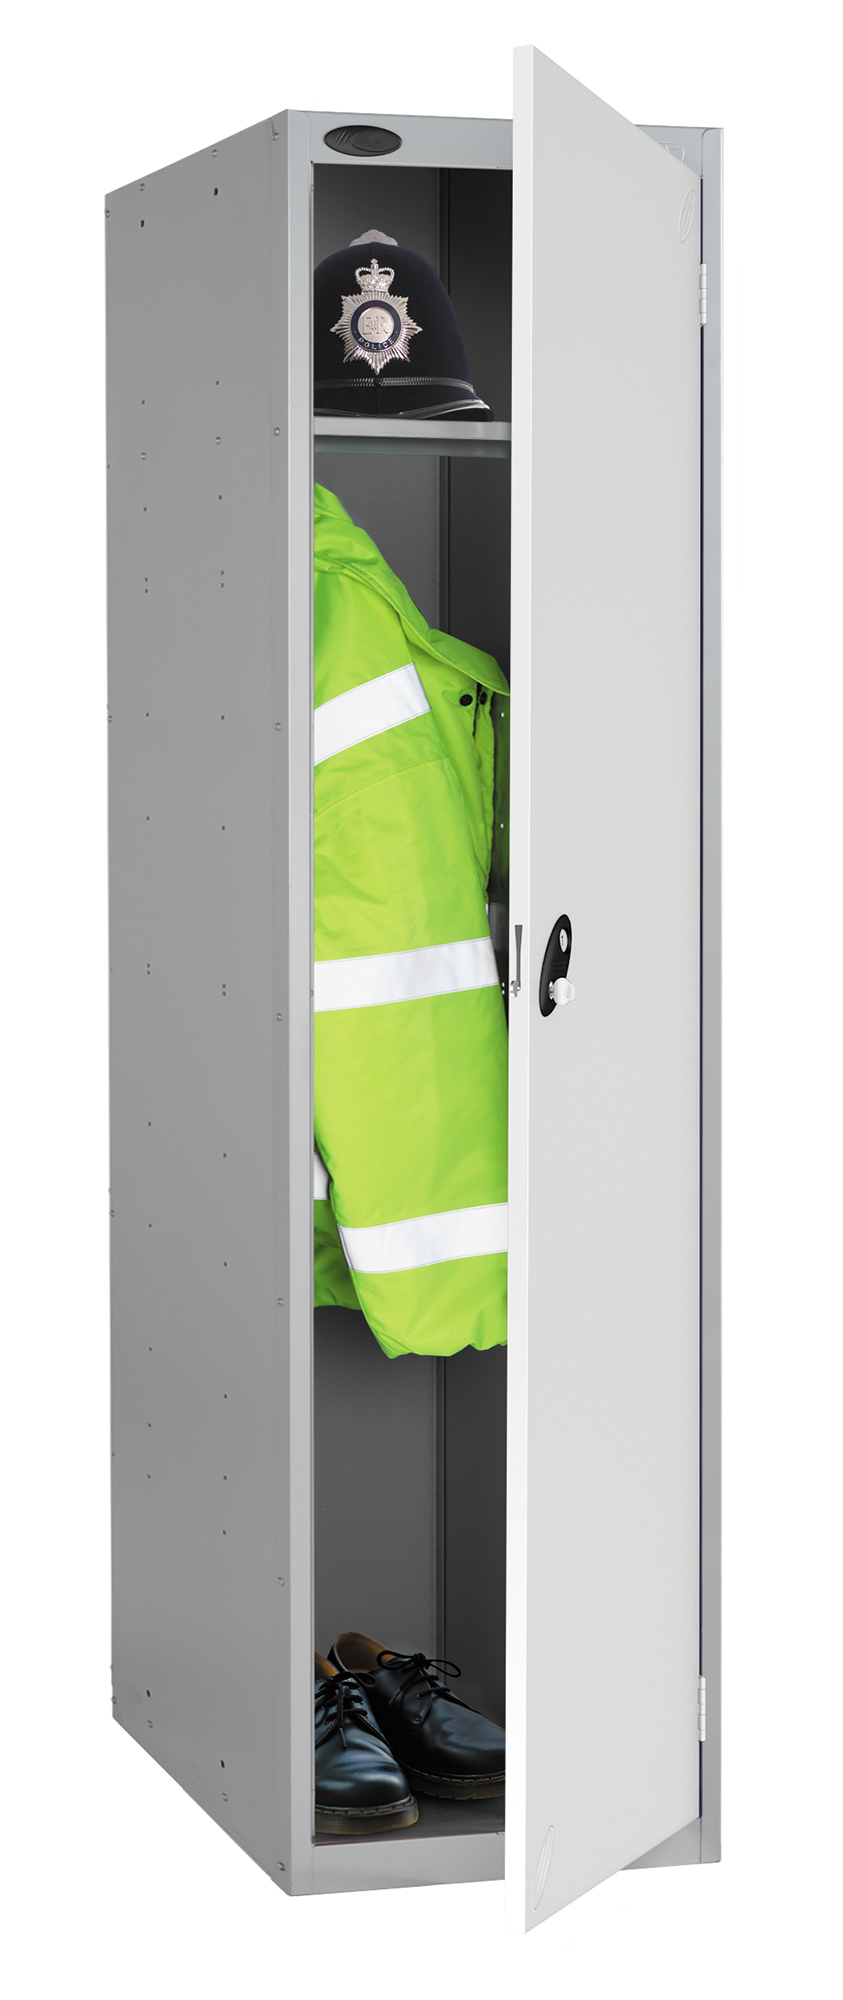 Probe high capacity police locker in white colour is designed to accommodate personal body armor